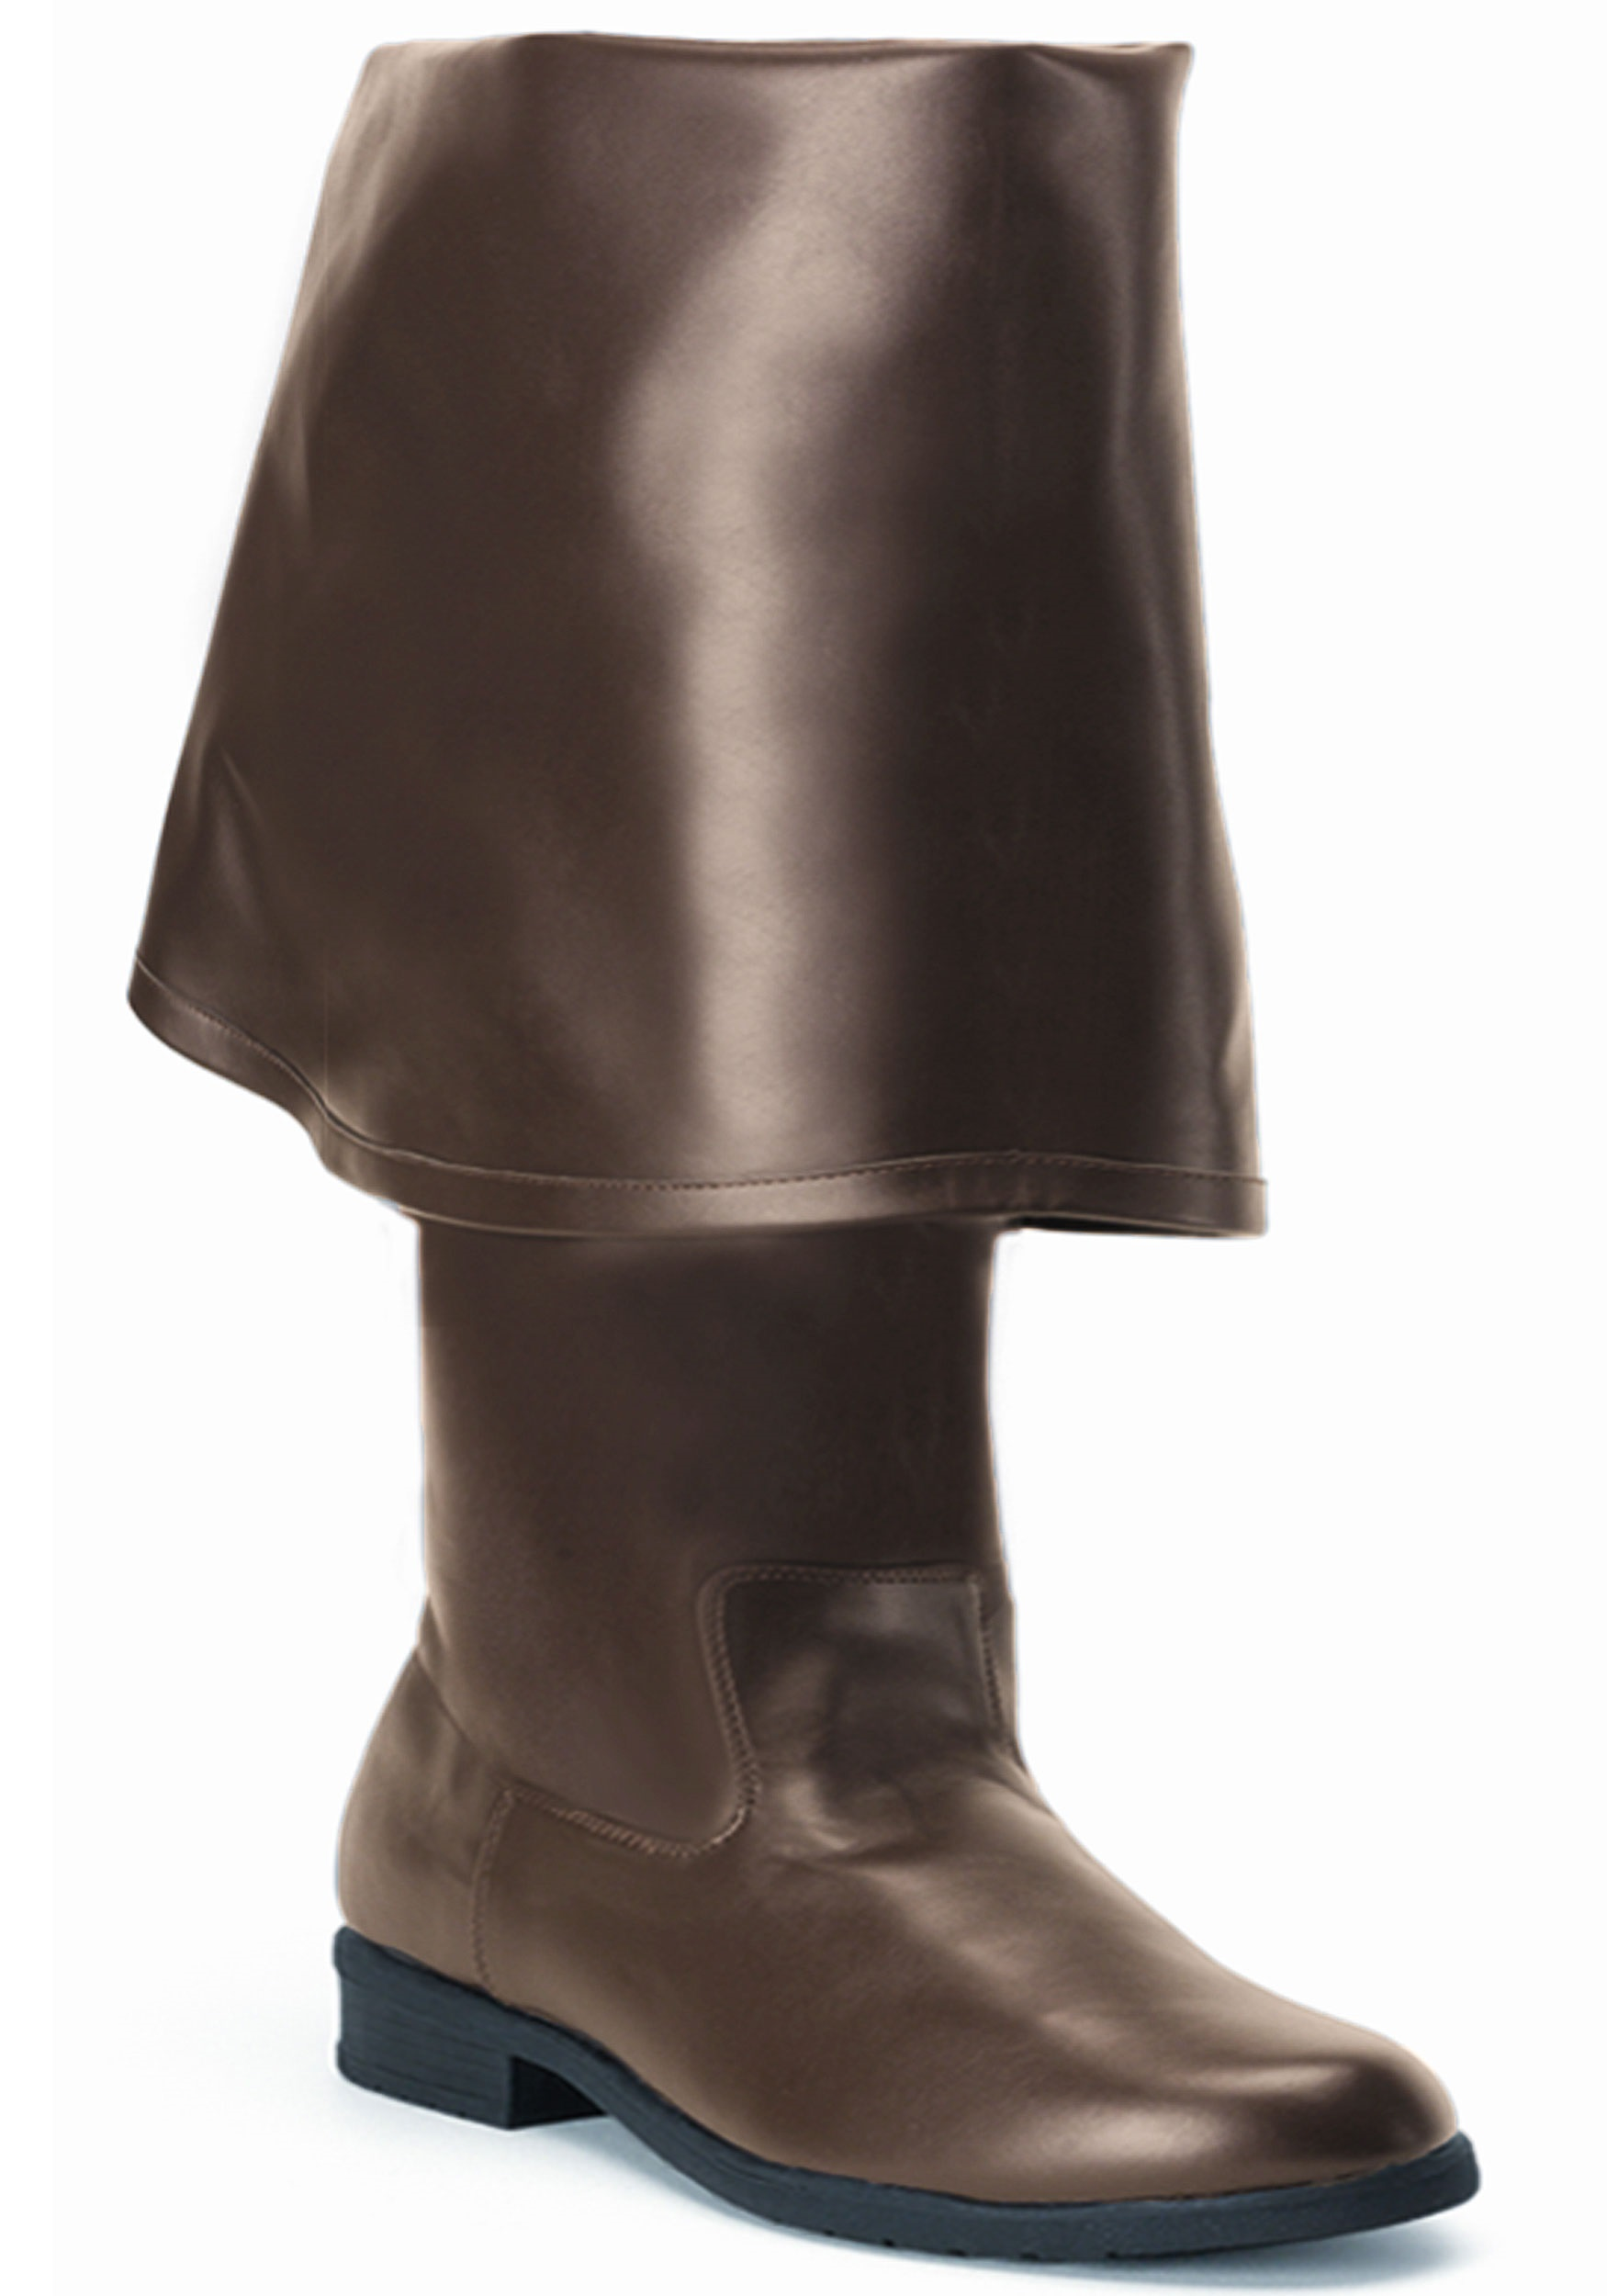 caribbean brown pirate boots